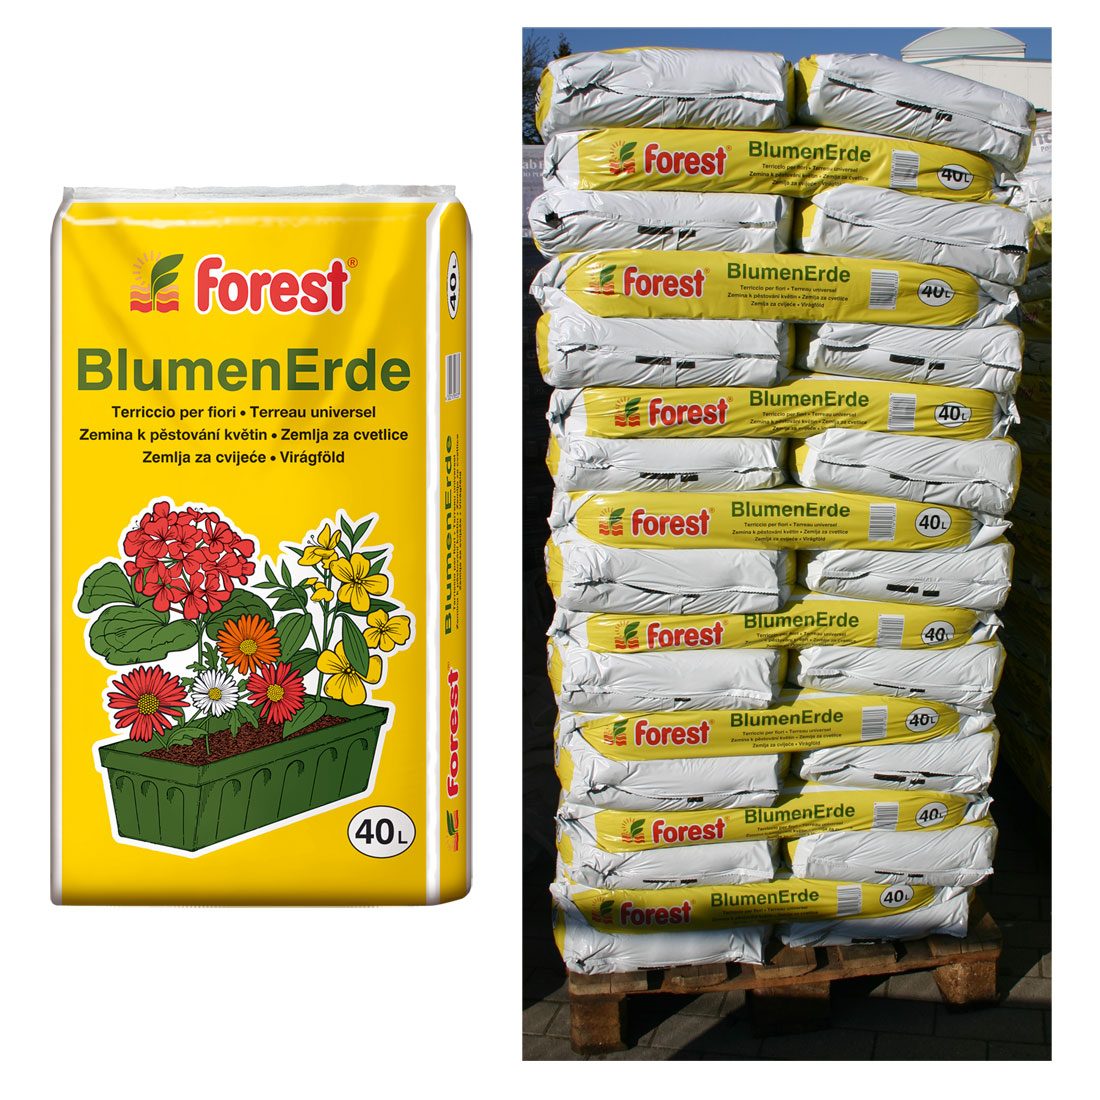 50 sack blumenerde forest 40 liter 2000 liter pflanzerde uni gartenerde neu ebay. Black Bedroom Furniture Sets. Home Design Ideas